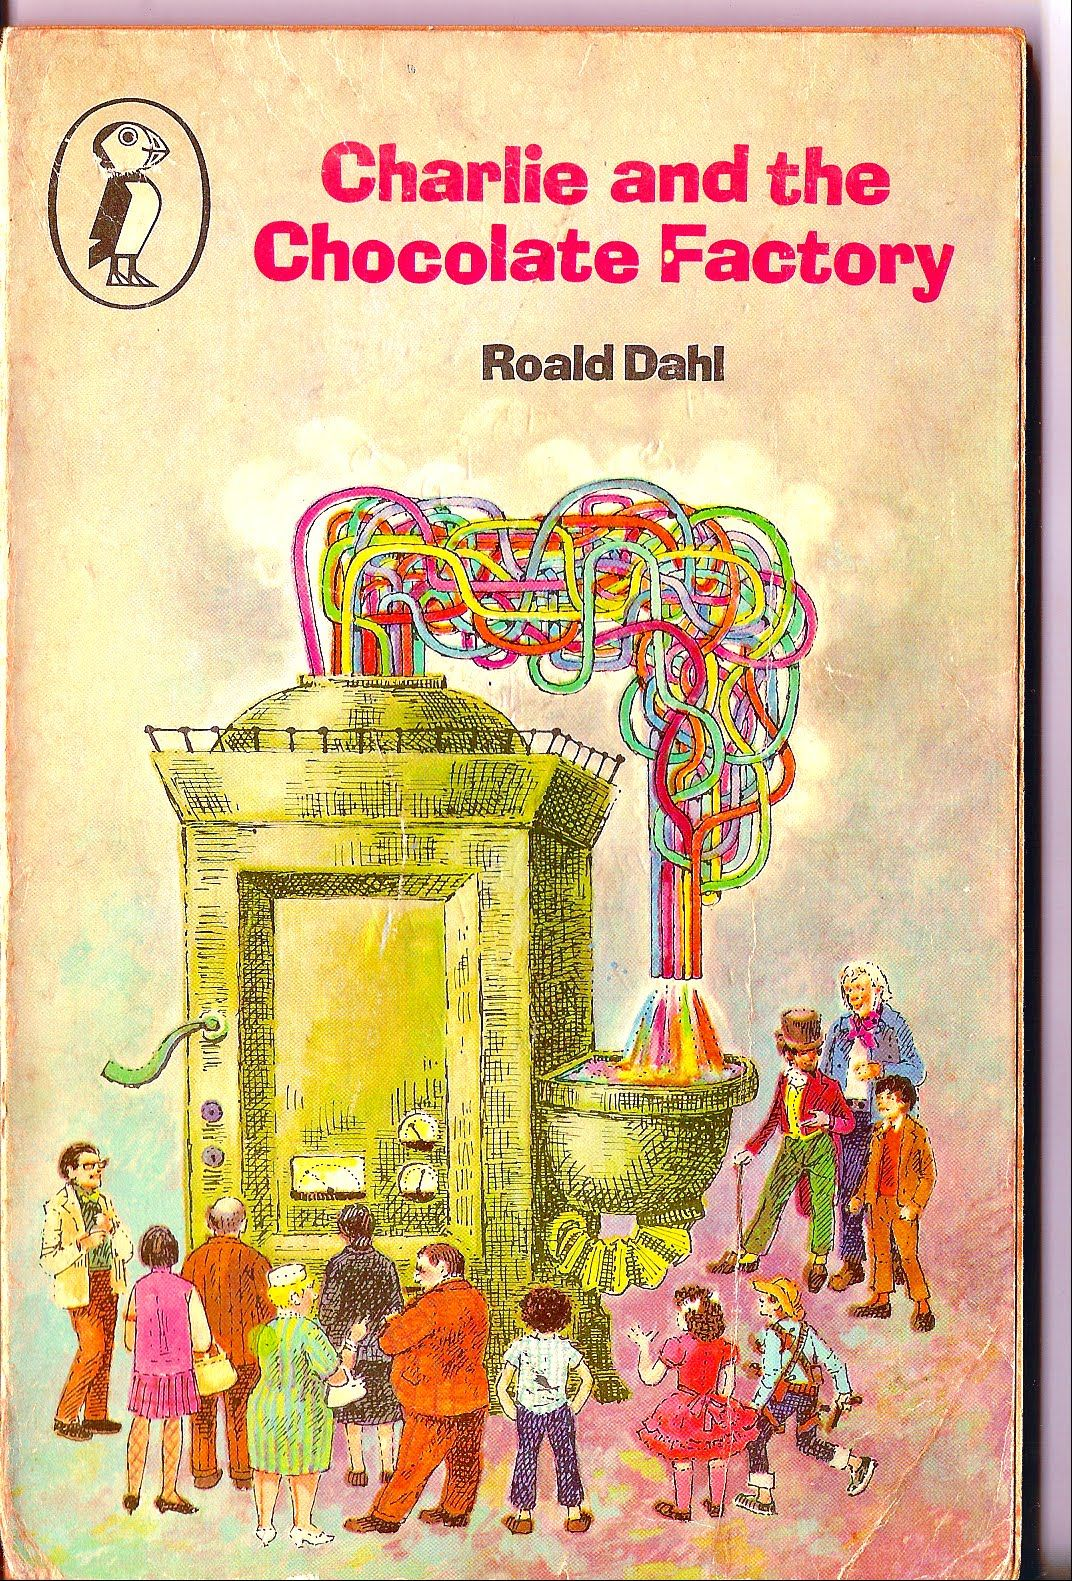 the old version of quotcharlie and the chocolate factory